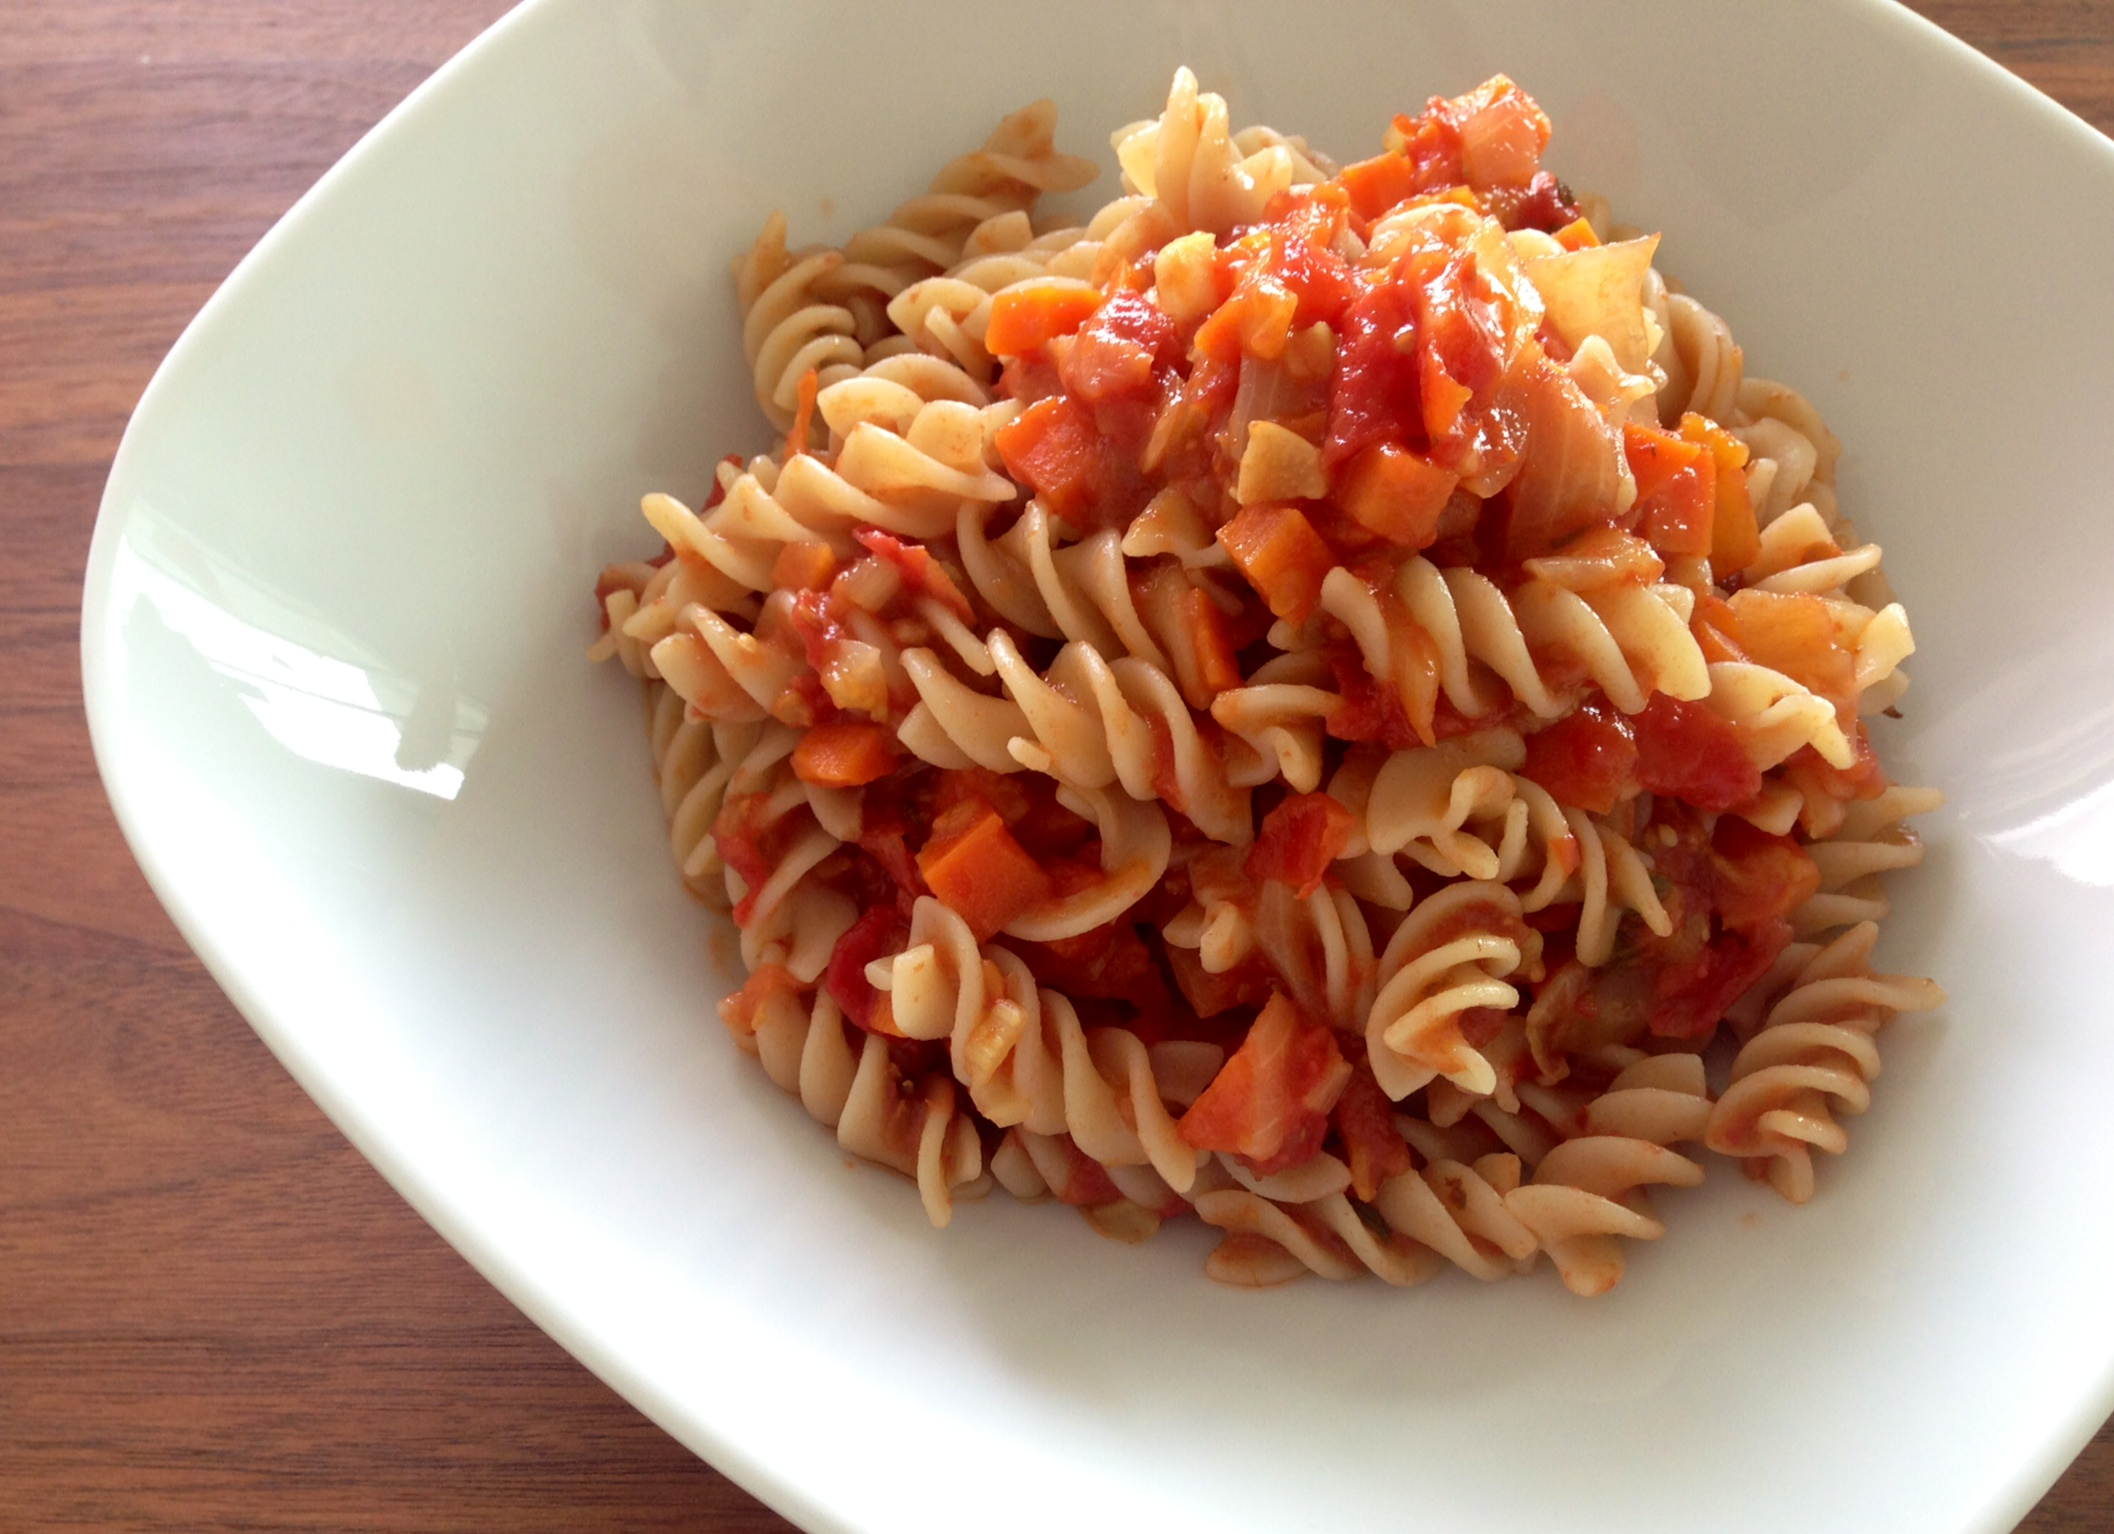 Veggies & Heirloom Tomato Pasta Sauce